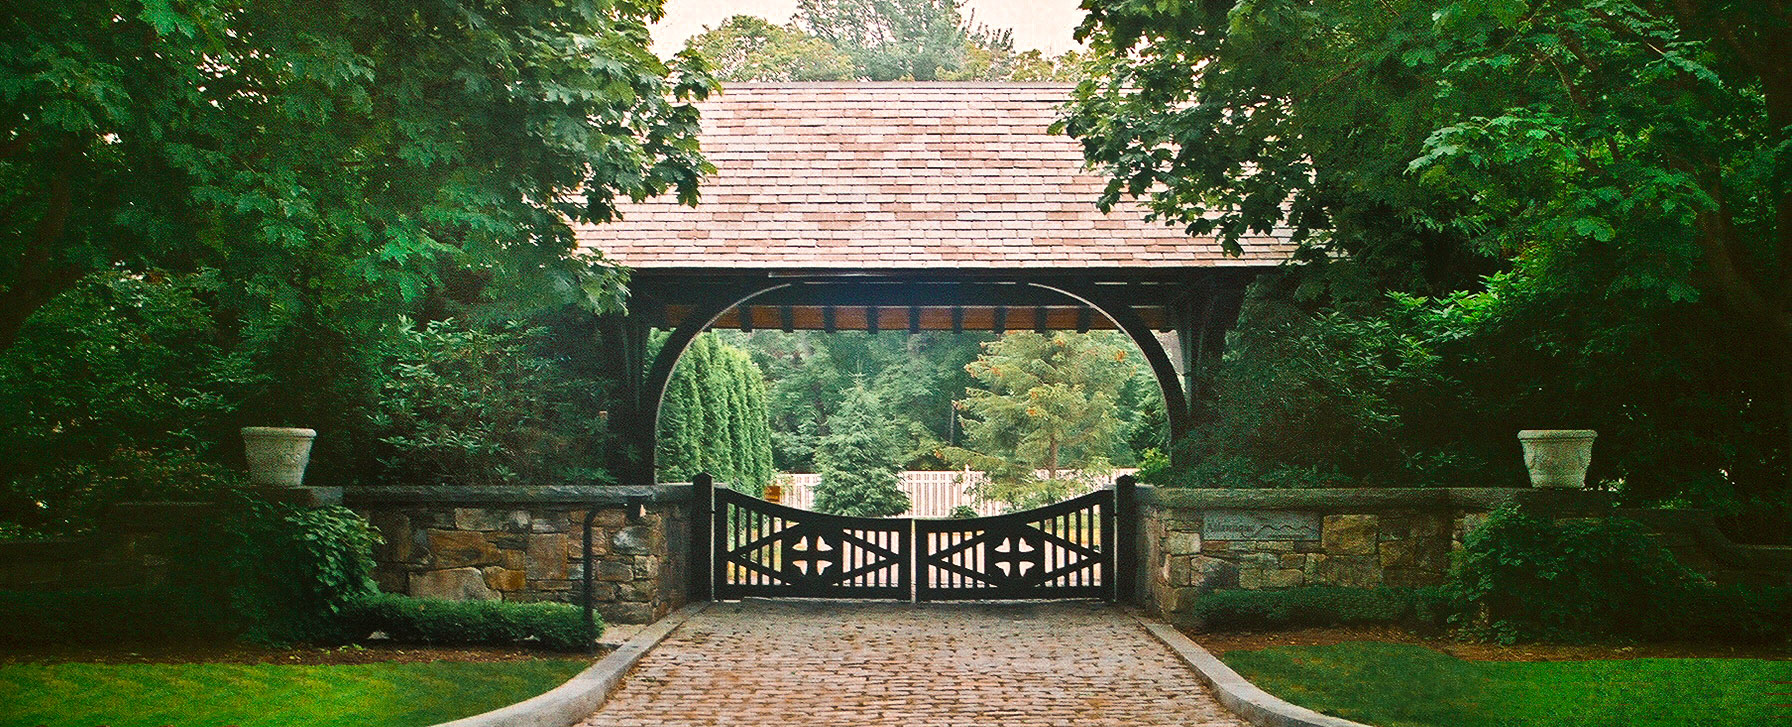 Historically Inspired Estate Entry by Stroudwater Design Group, Inc.